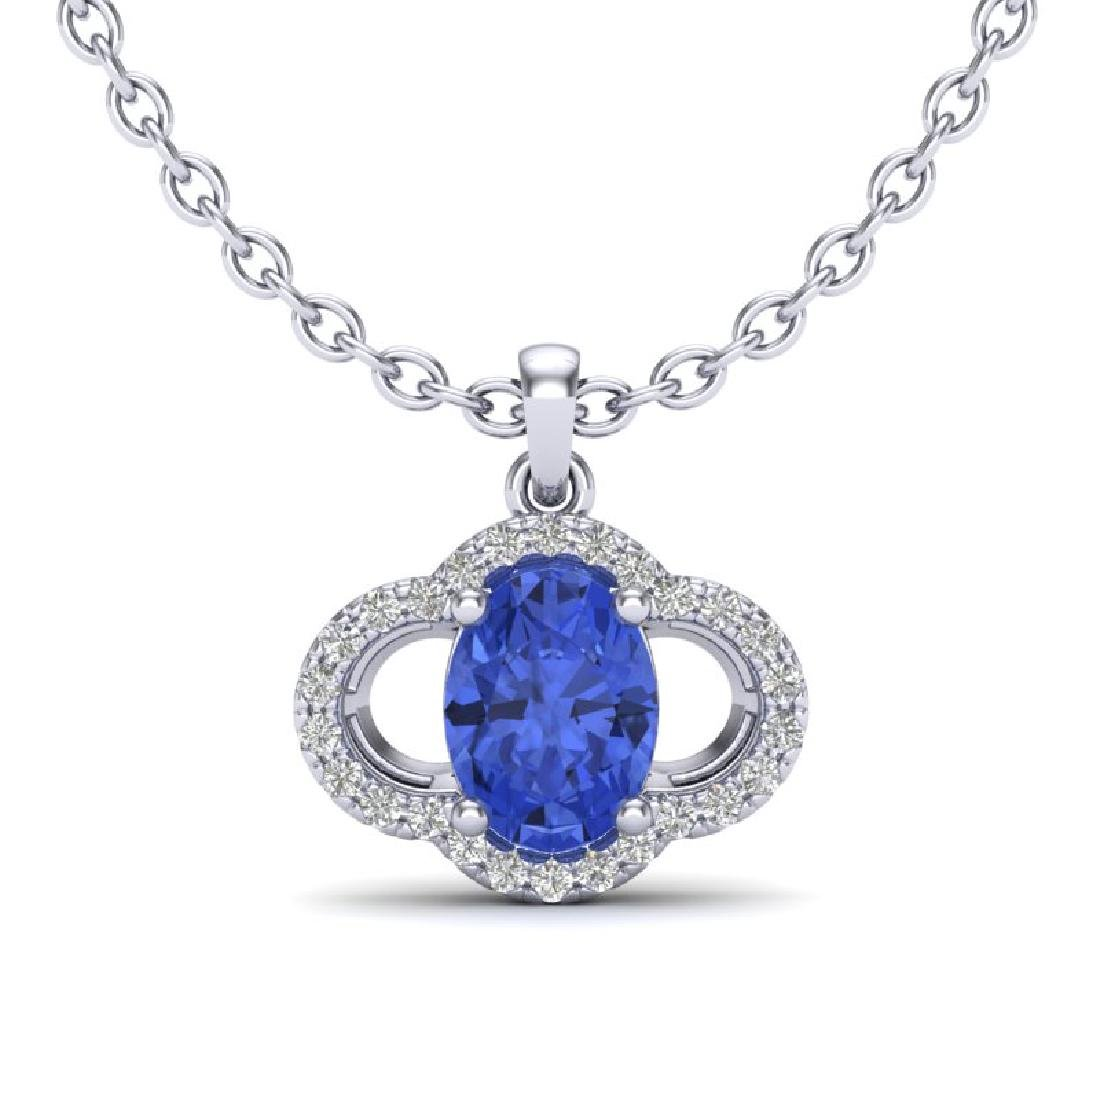 1.75 CTW Tanzanite & Micro Pave VS/SI Diamond Necklace